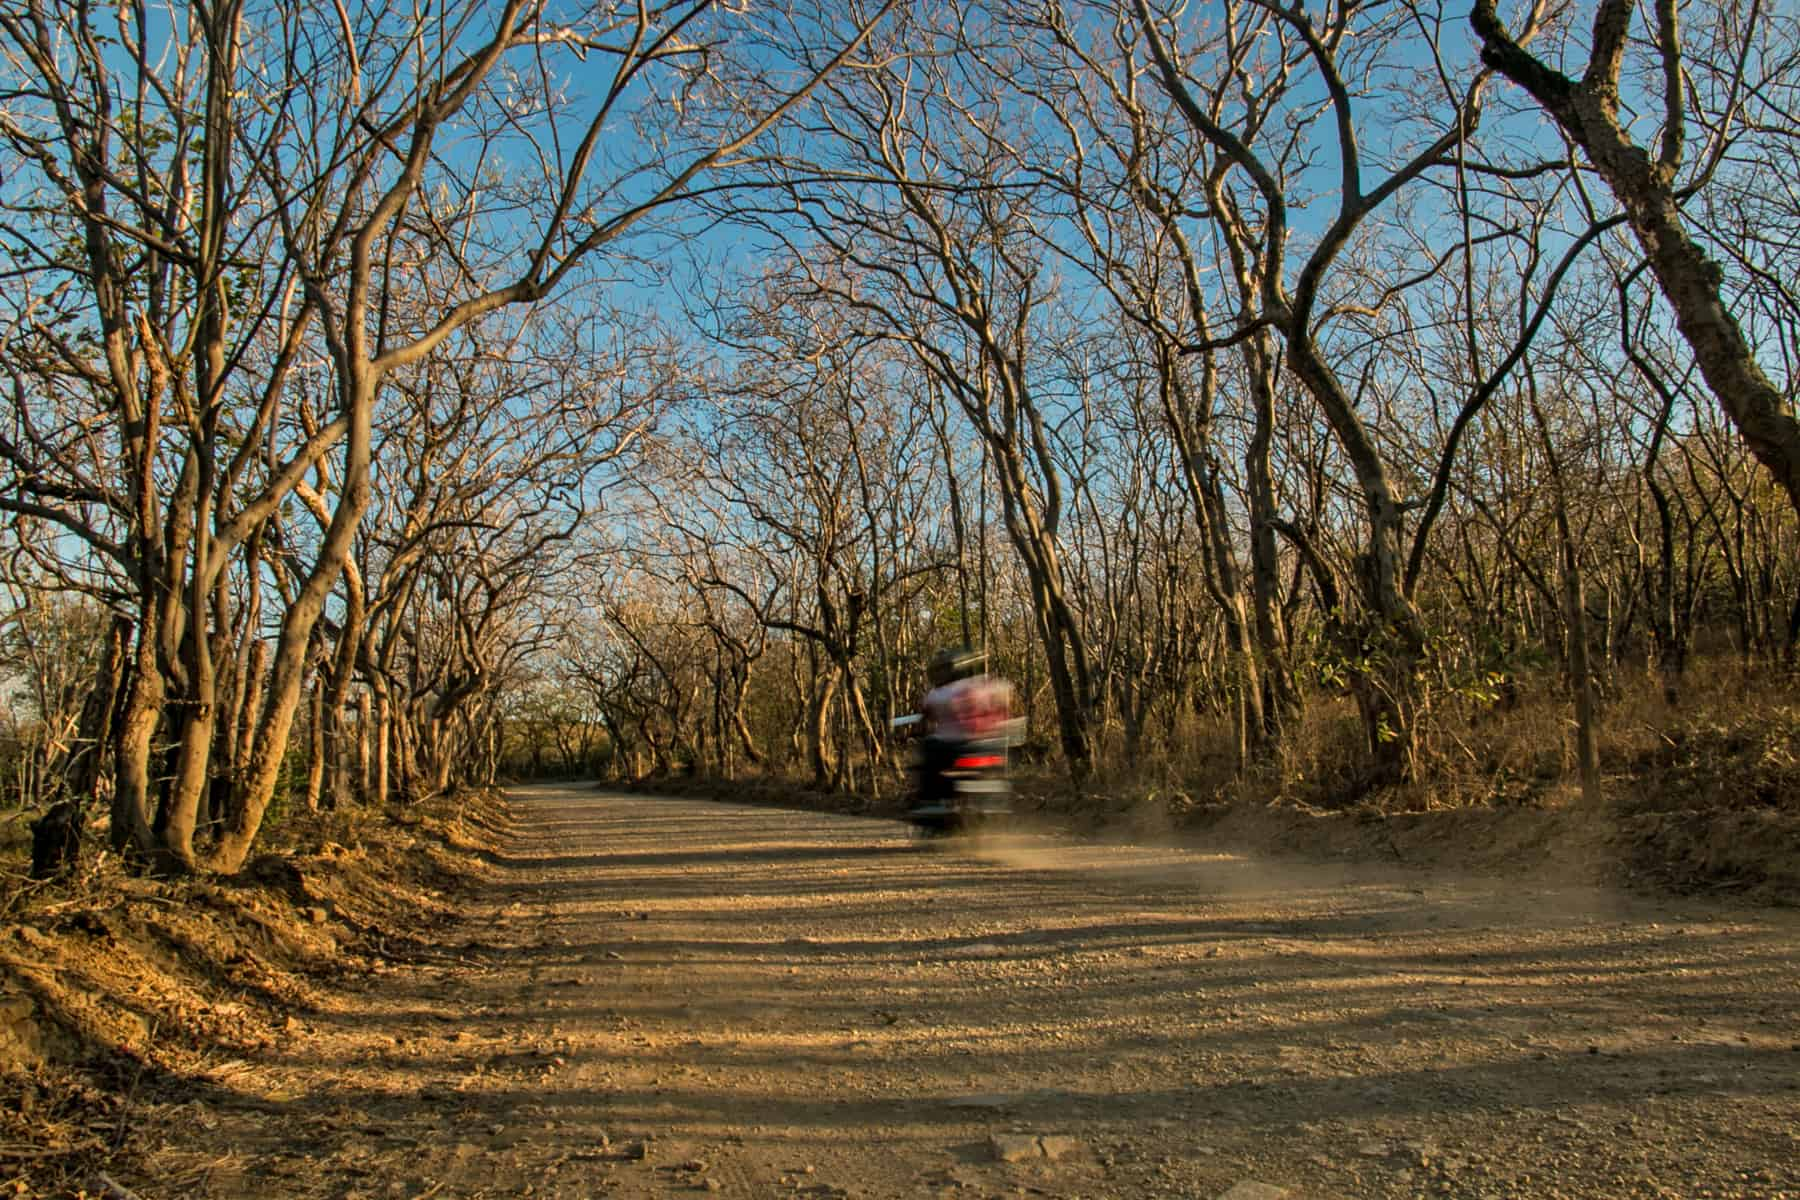 Motorcycle driving down a dirt road surrounded by leafless trees